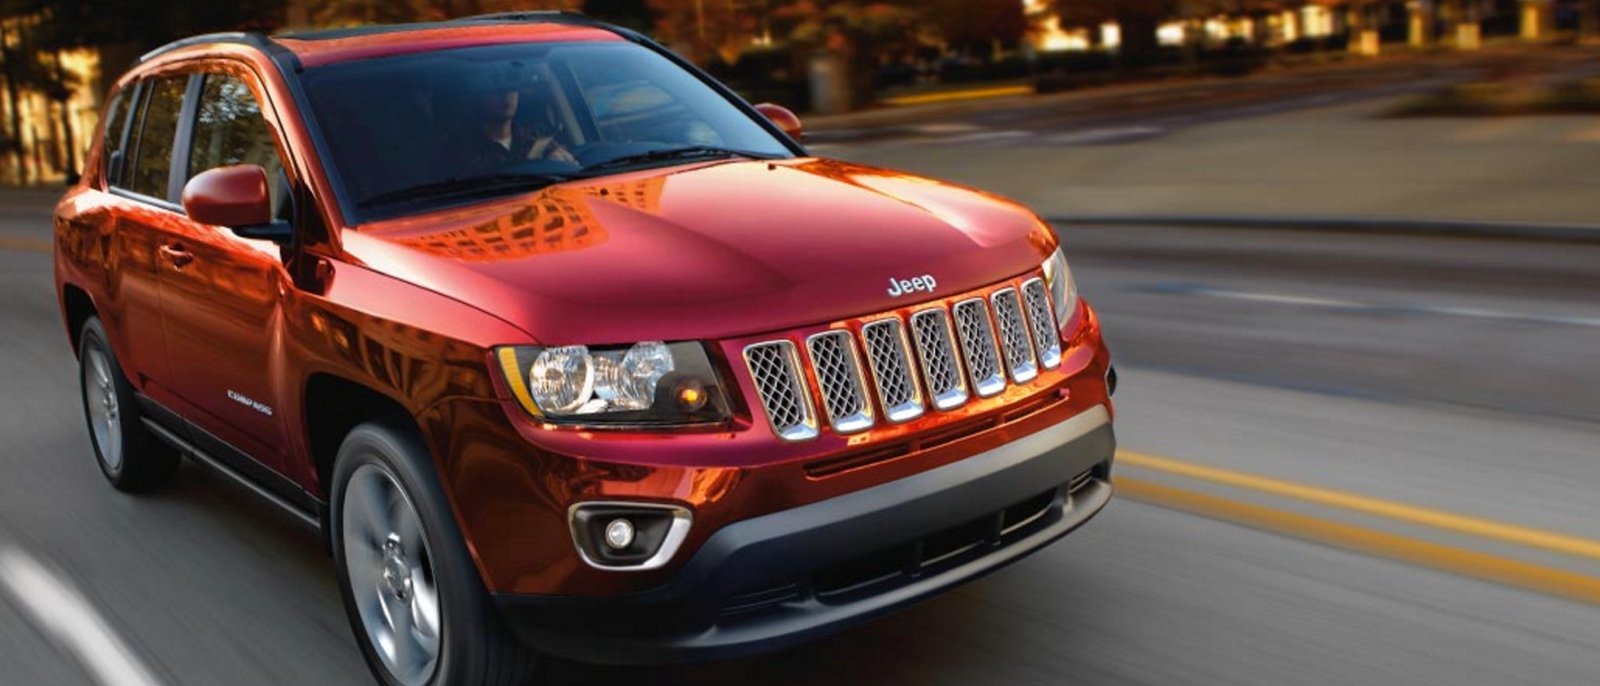 2016 Jeep Compass red exterior